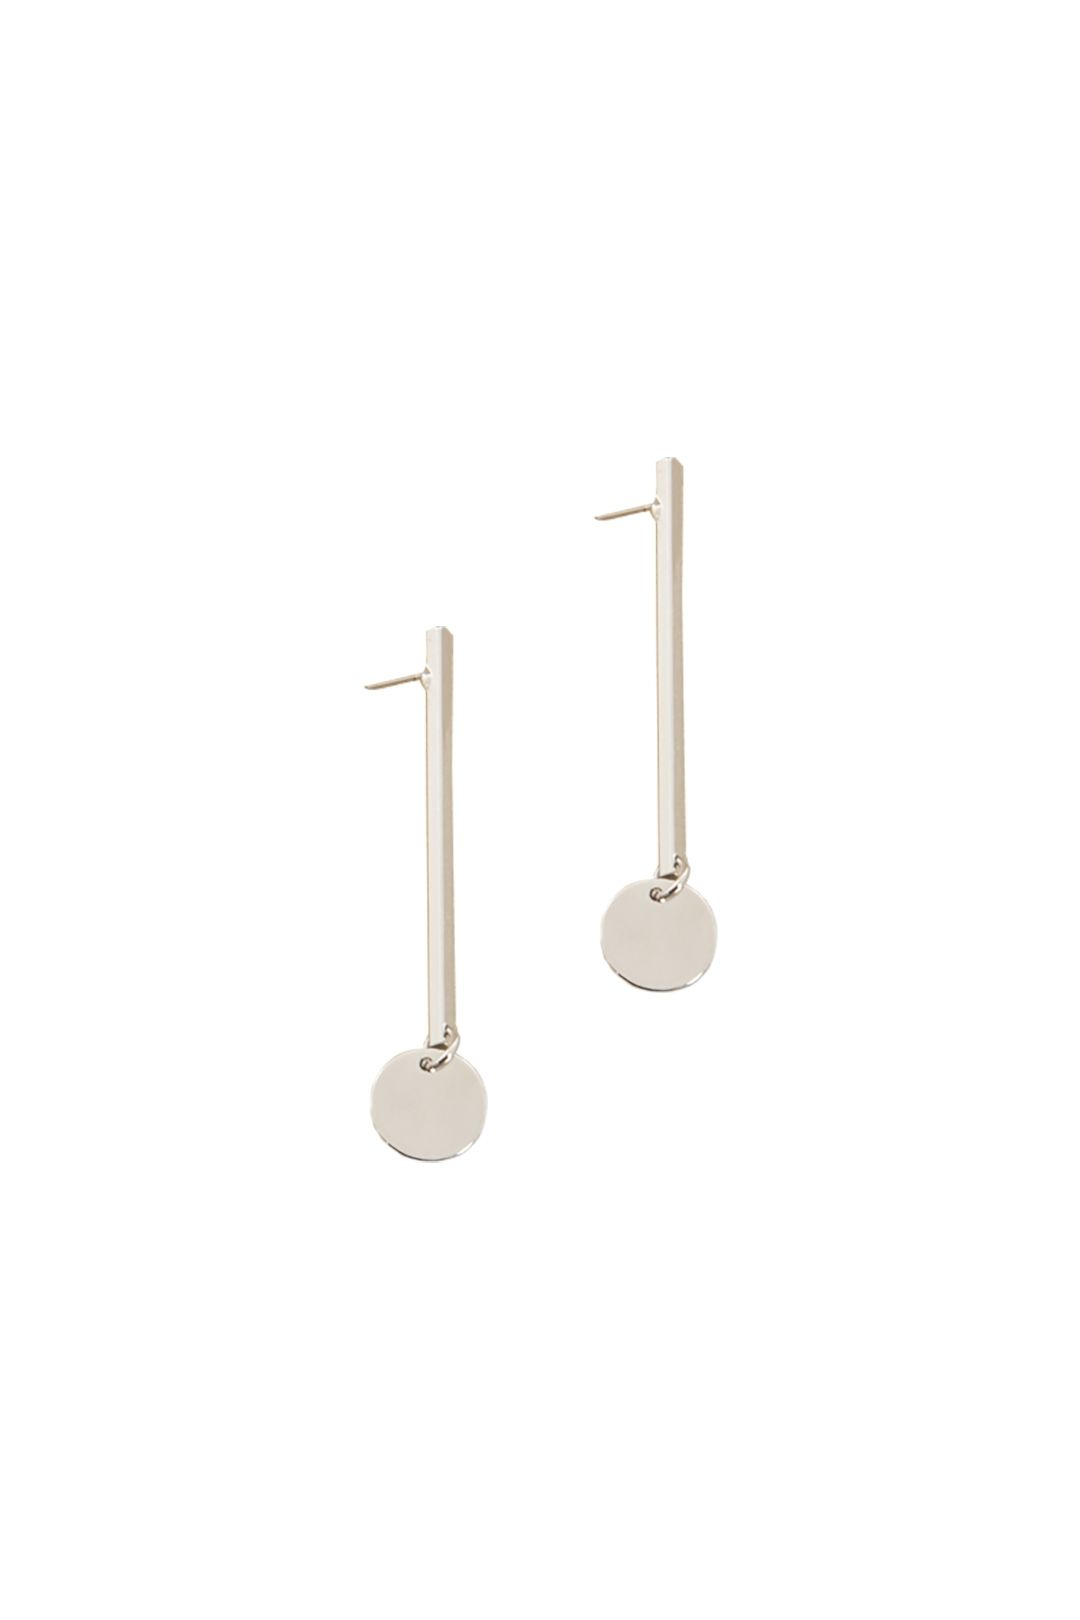 Adorne - Rod and Disc Drop Earring - Silver - Front